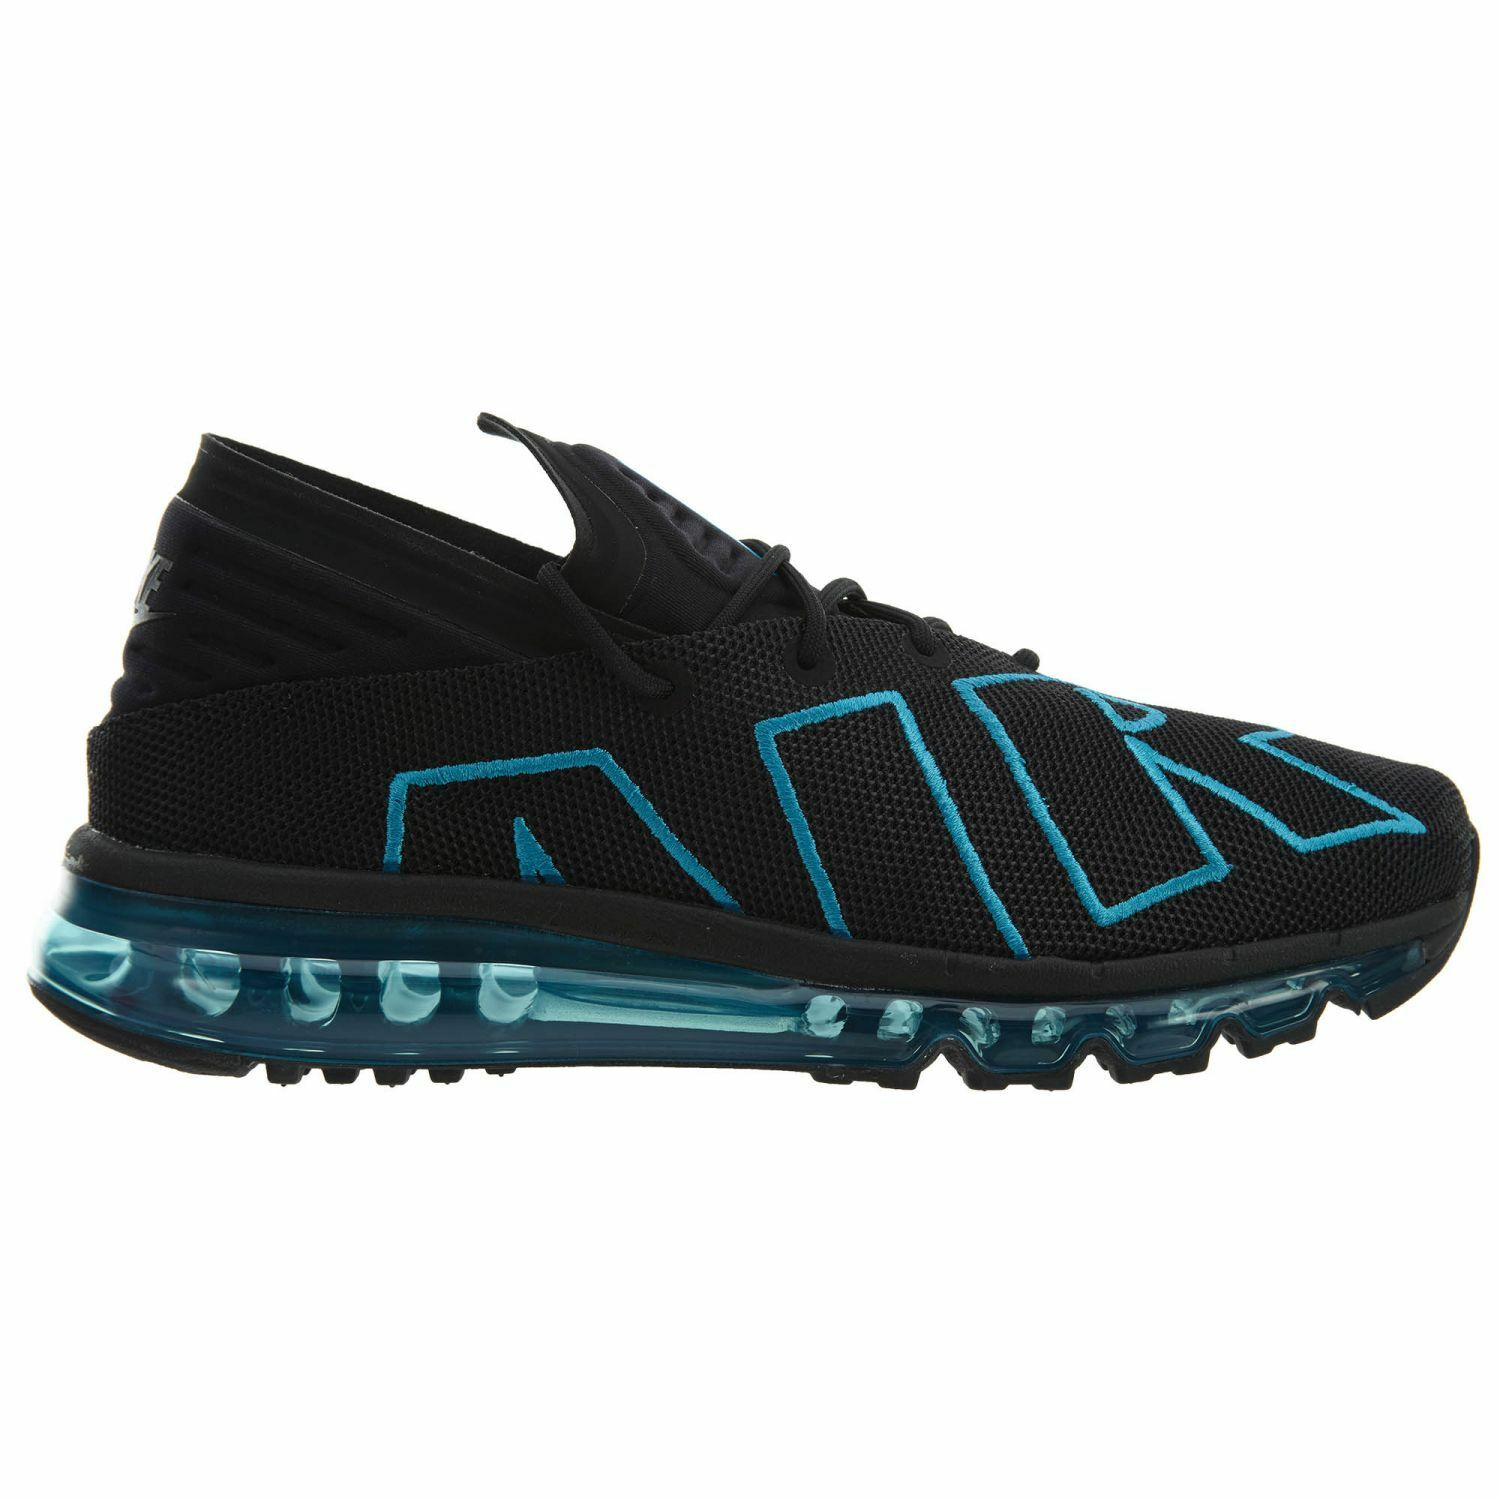 Nike Air Max Flair Turquoise Mens 942236-010 Black Neo Turquoise Flair Running Shoes Size 10.5 d967c4